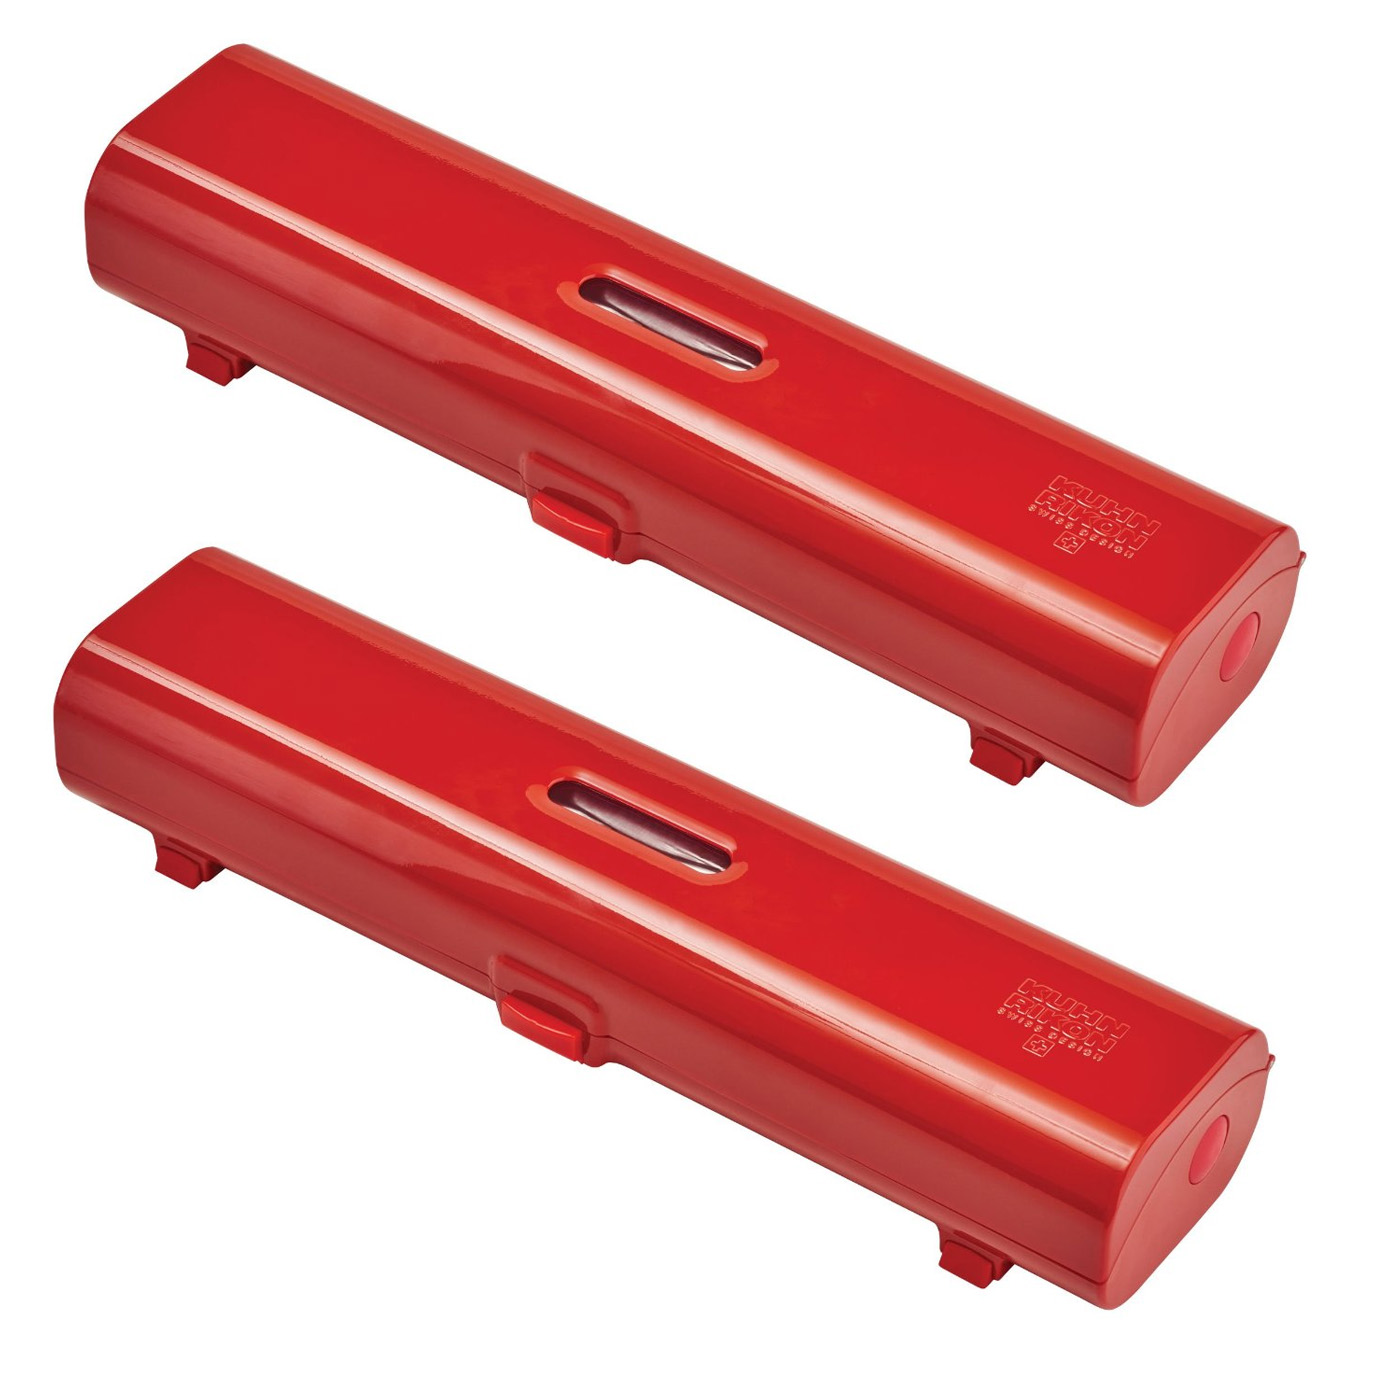 Kuhn Rikon Foil & Plastic Wrap Dispenser Set Of 2, Red